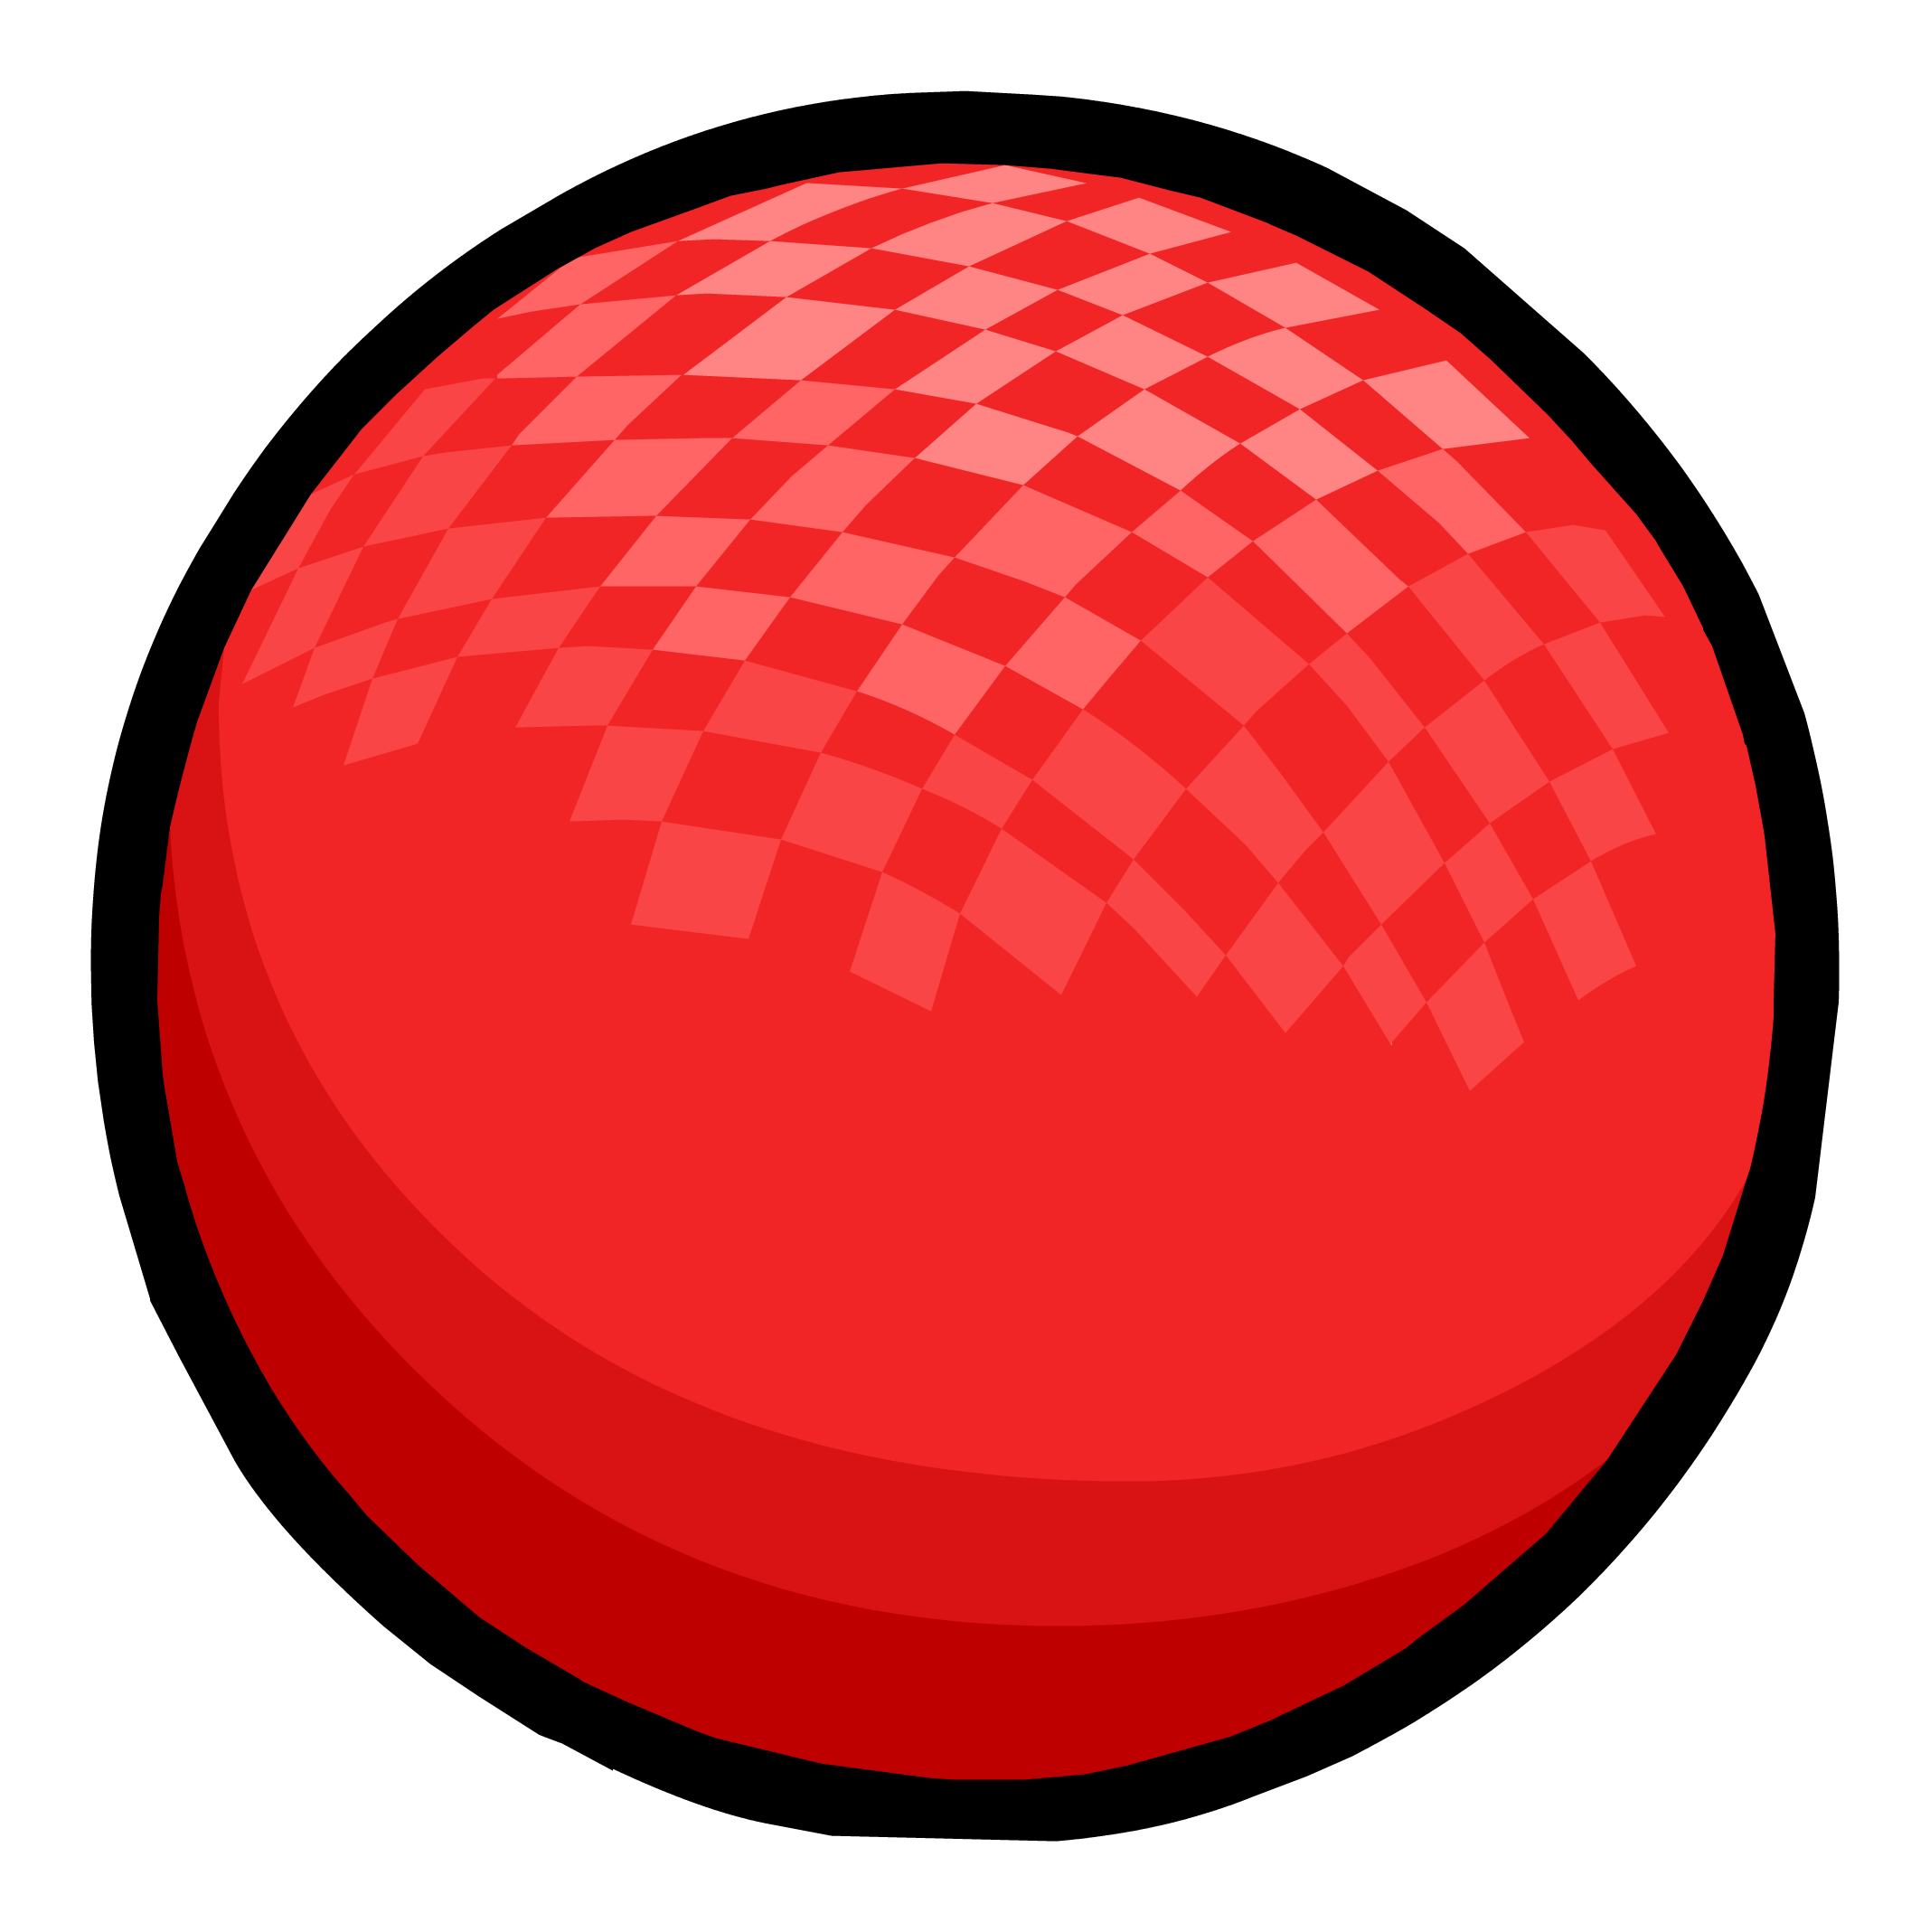 Donut clipart animated. Free dodgeball tournament cliparts